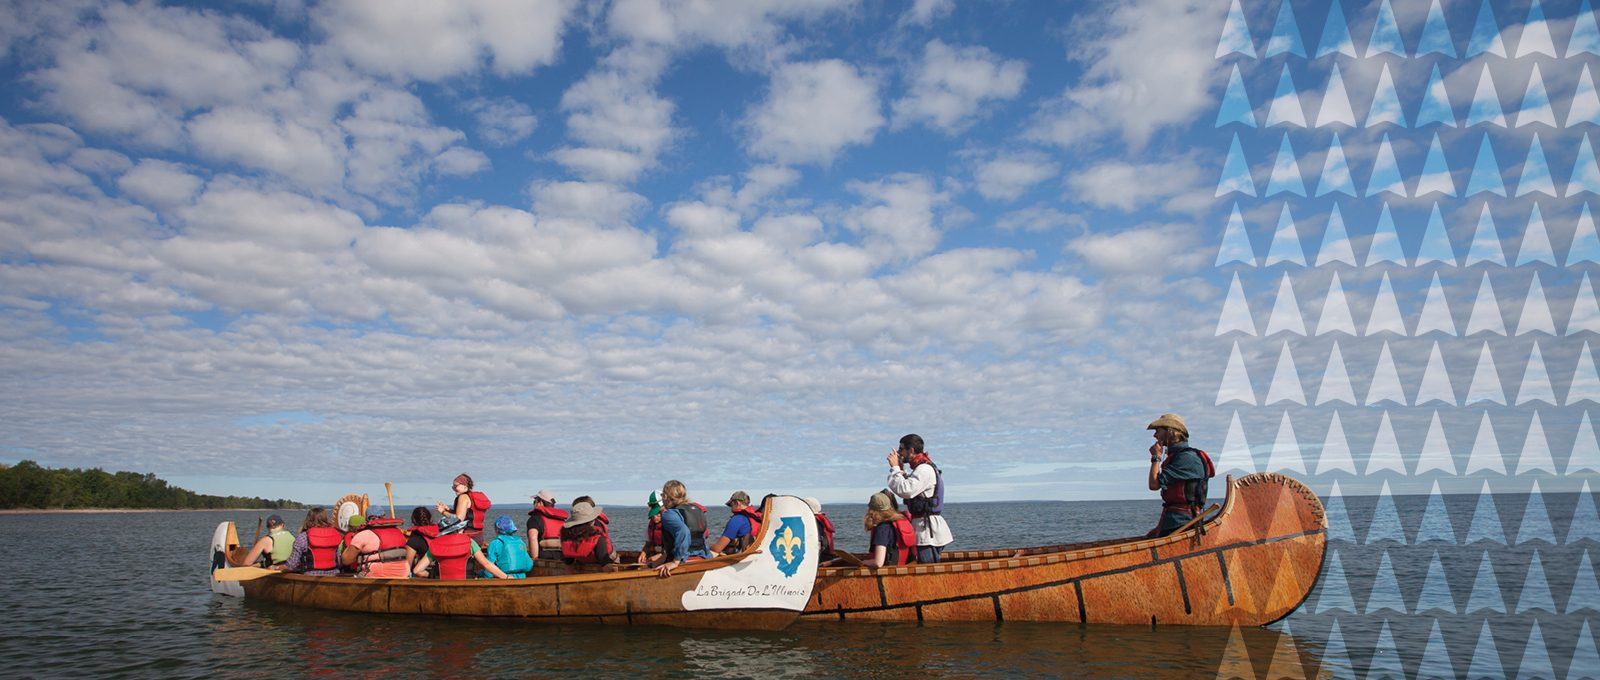 Northland College Superior Connections Voyageur canoe